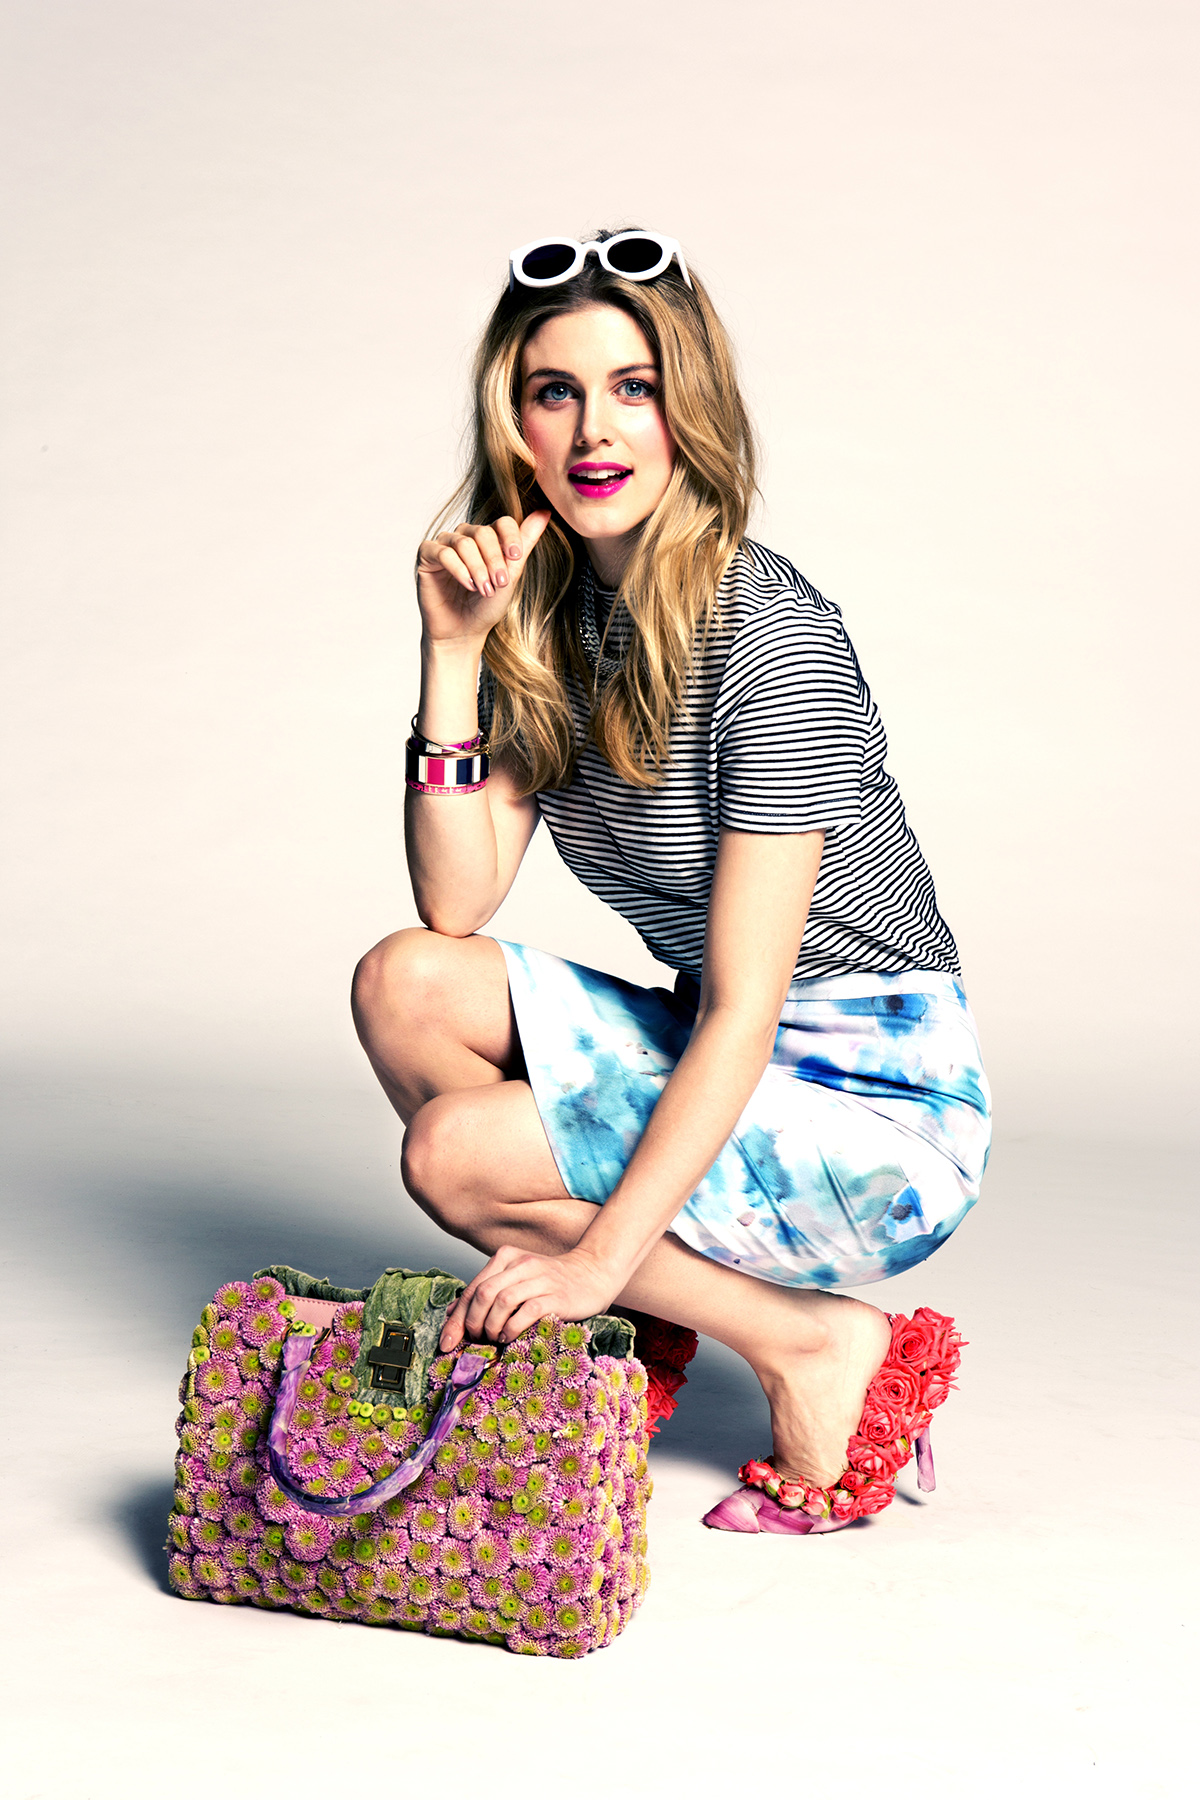 The Spring Summer accessories camaign at McArthurGlen Designer Outlets UK -2nd 20th April, featuring Ashley James (5)